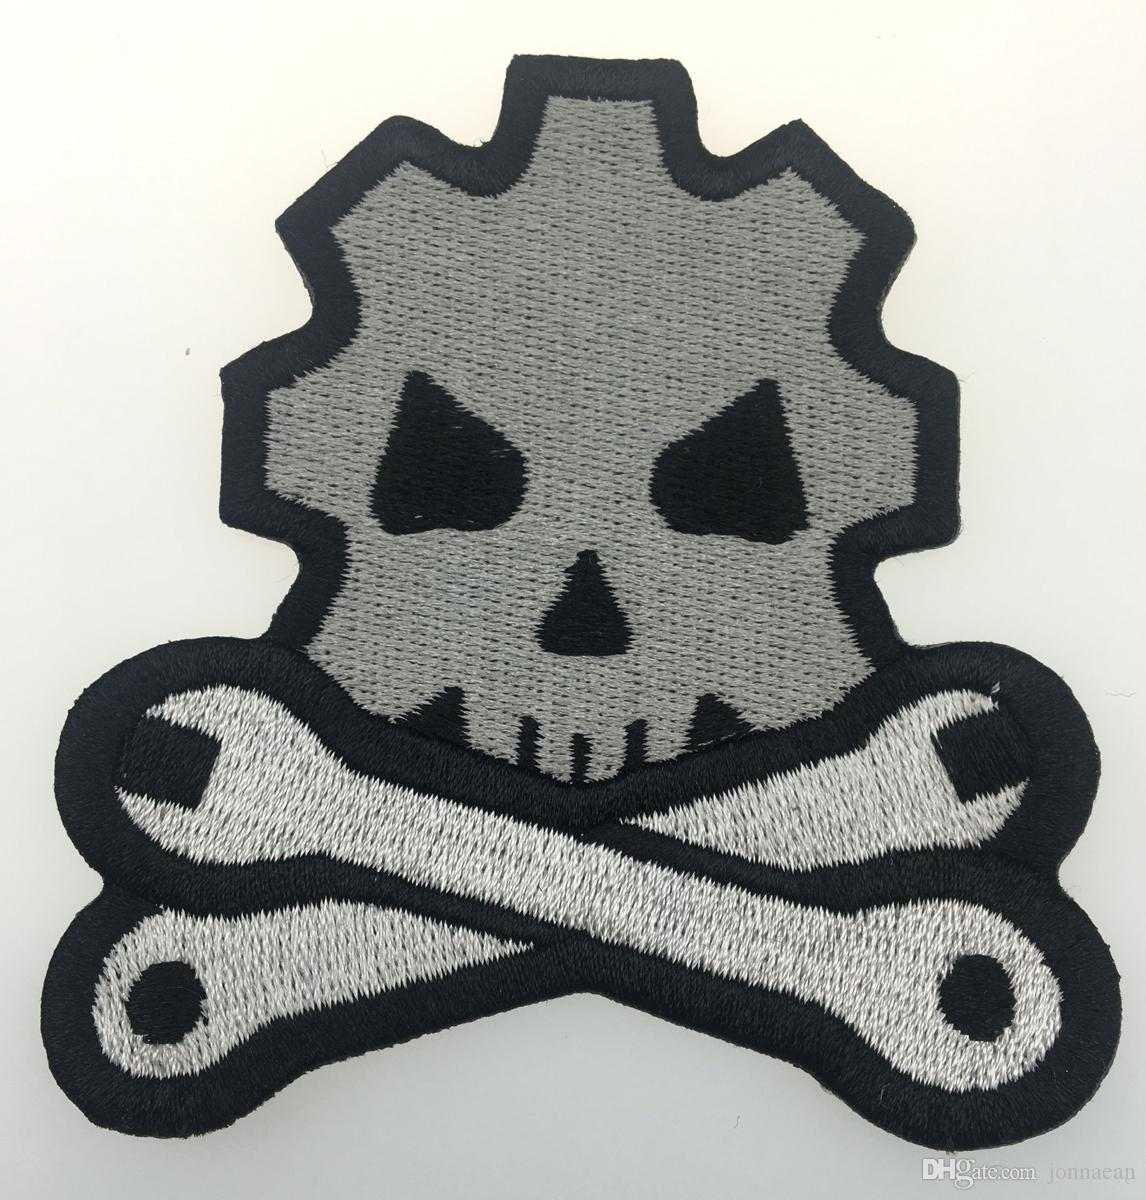 Cheap Skull Bone Tool Embroidered Iron On Patch Jacket Emblem 100% Embroidery Applique Badge 8.7cm*8cm G0042